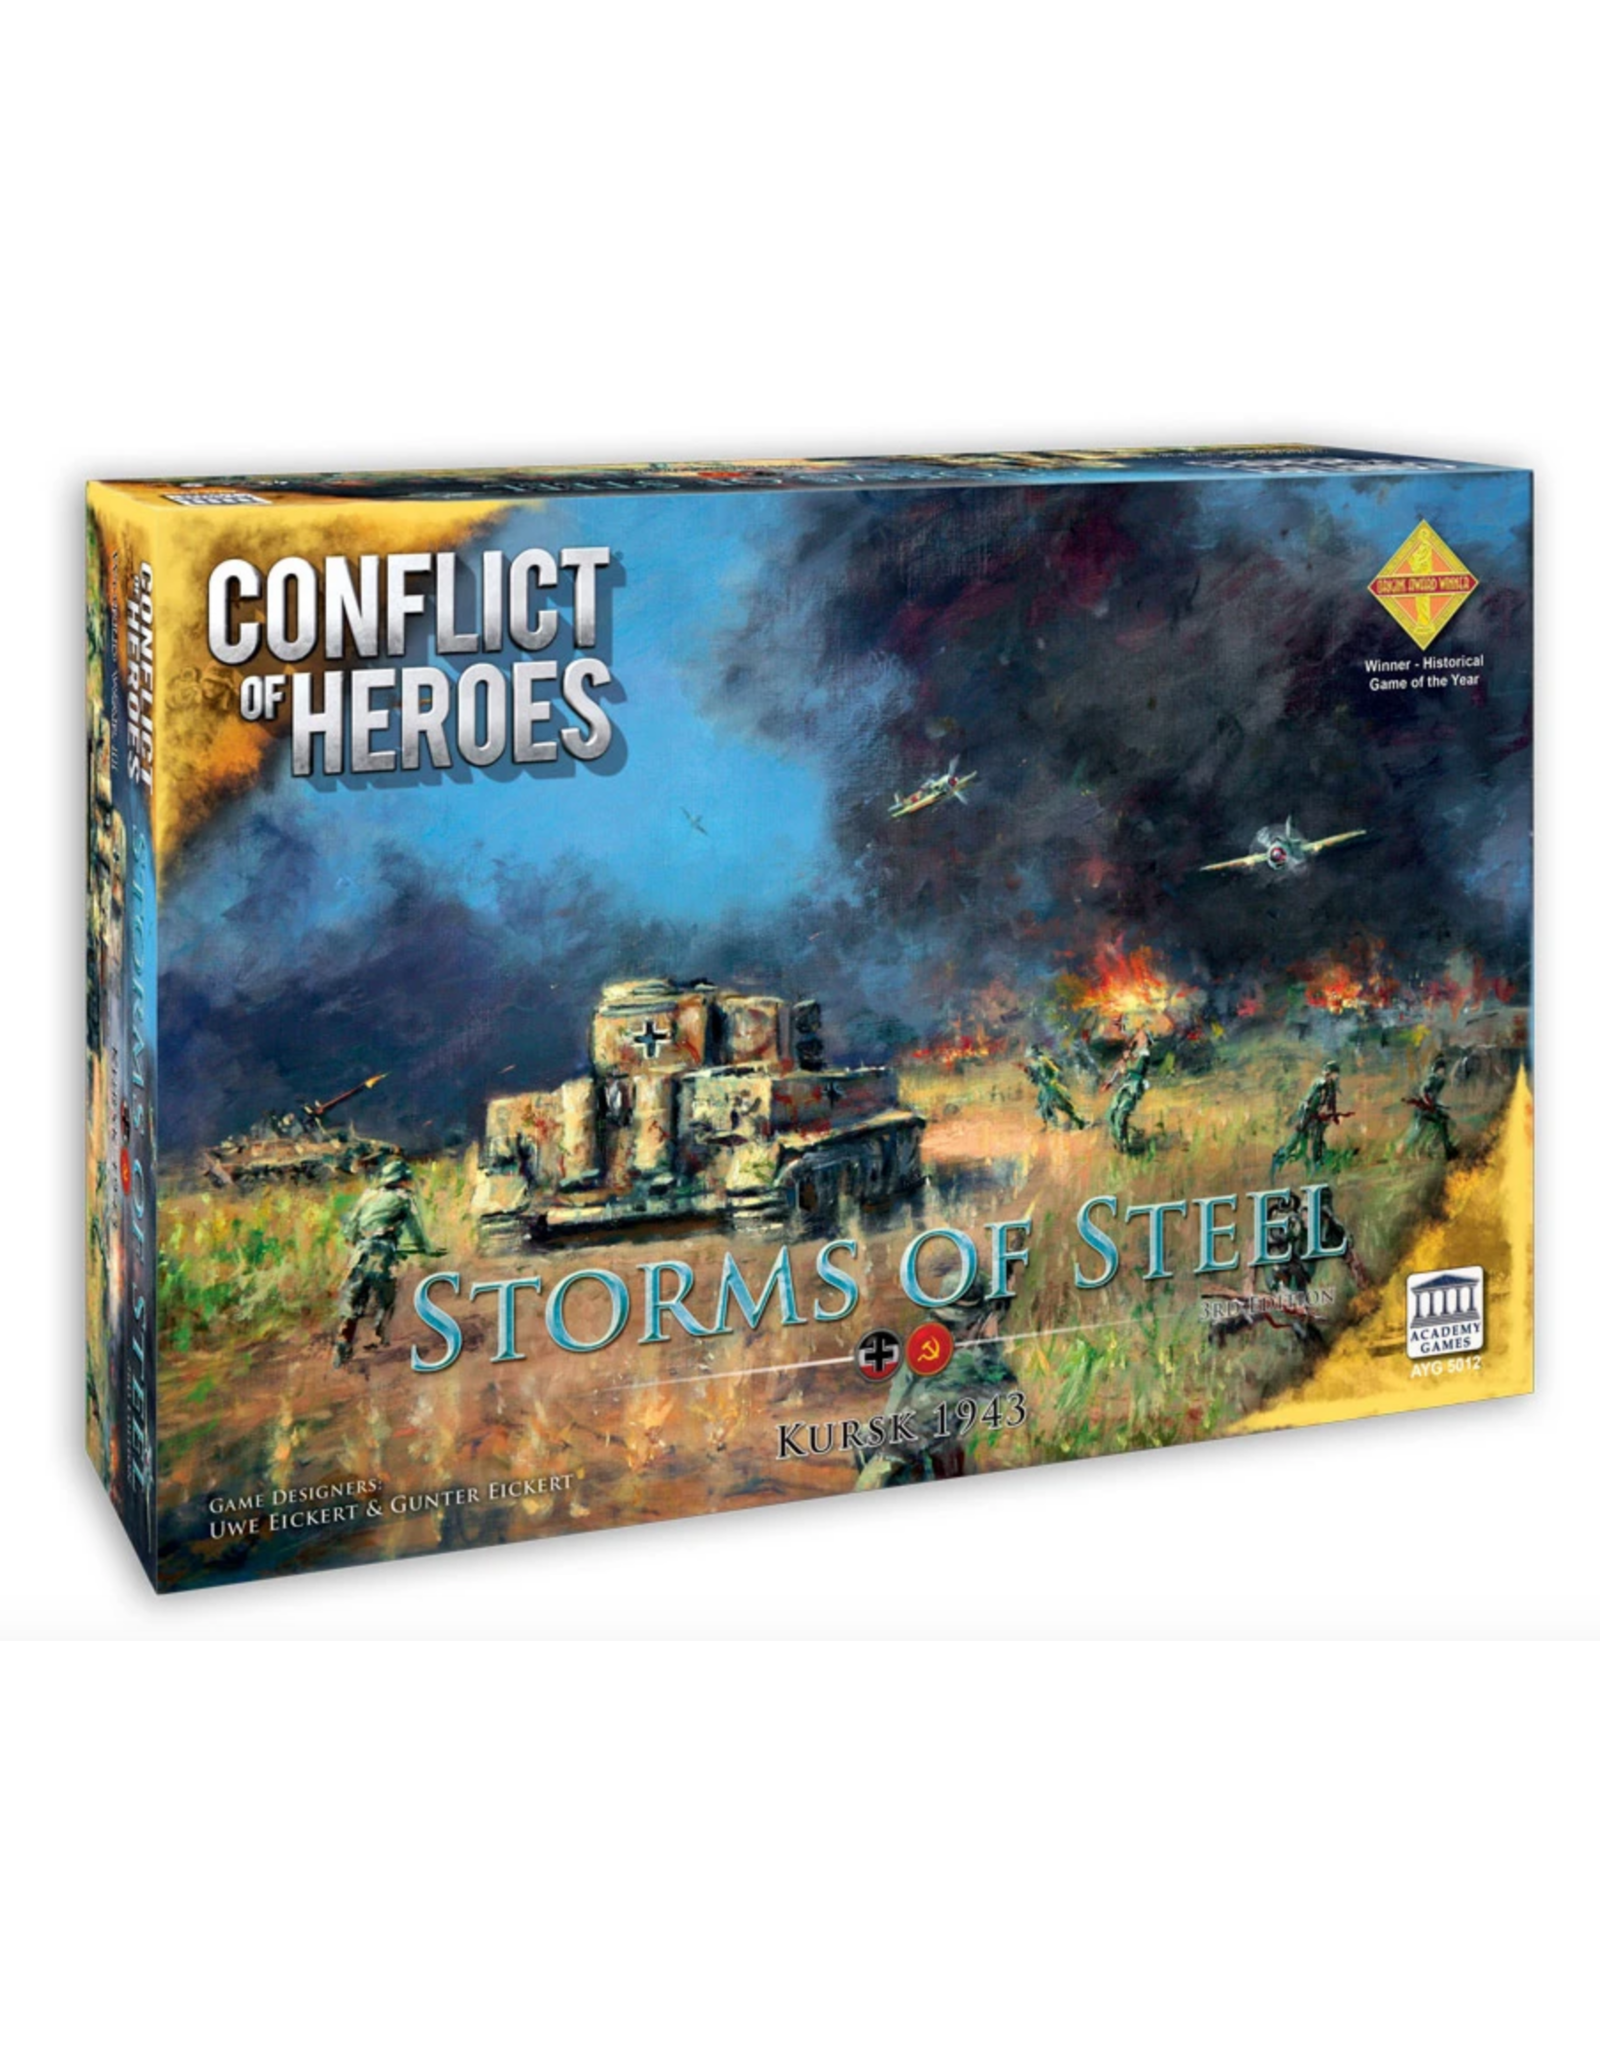 Academy Games Conflict of Heroes: Storms of Steel - Kursk 1943 3nd Edition